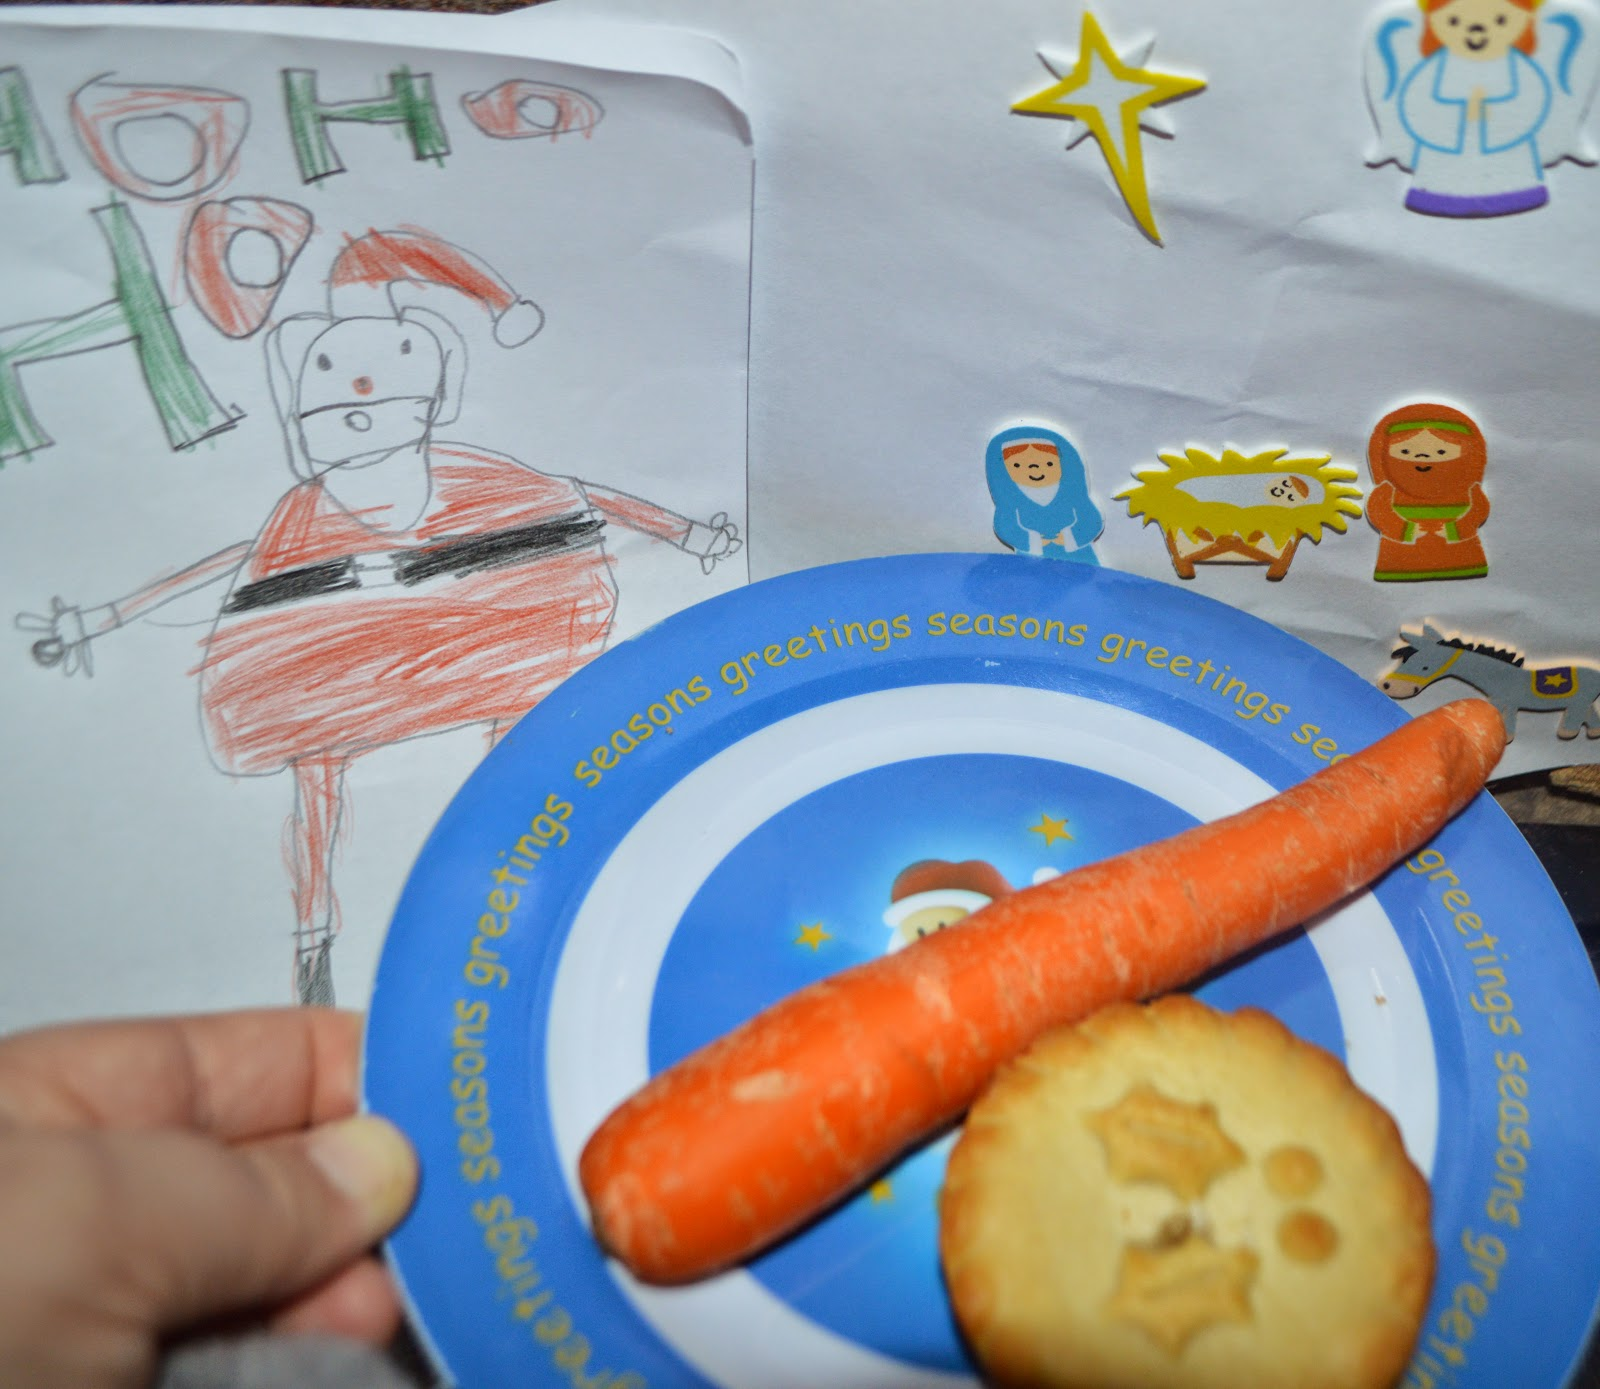 Christmas Eve 2014 UK Traditions Mince Pie Carrot Santa